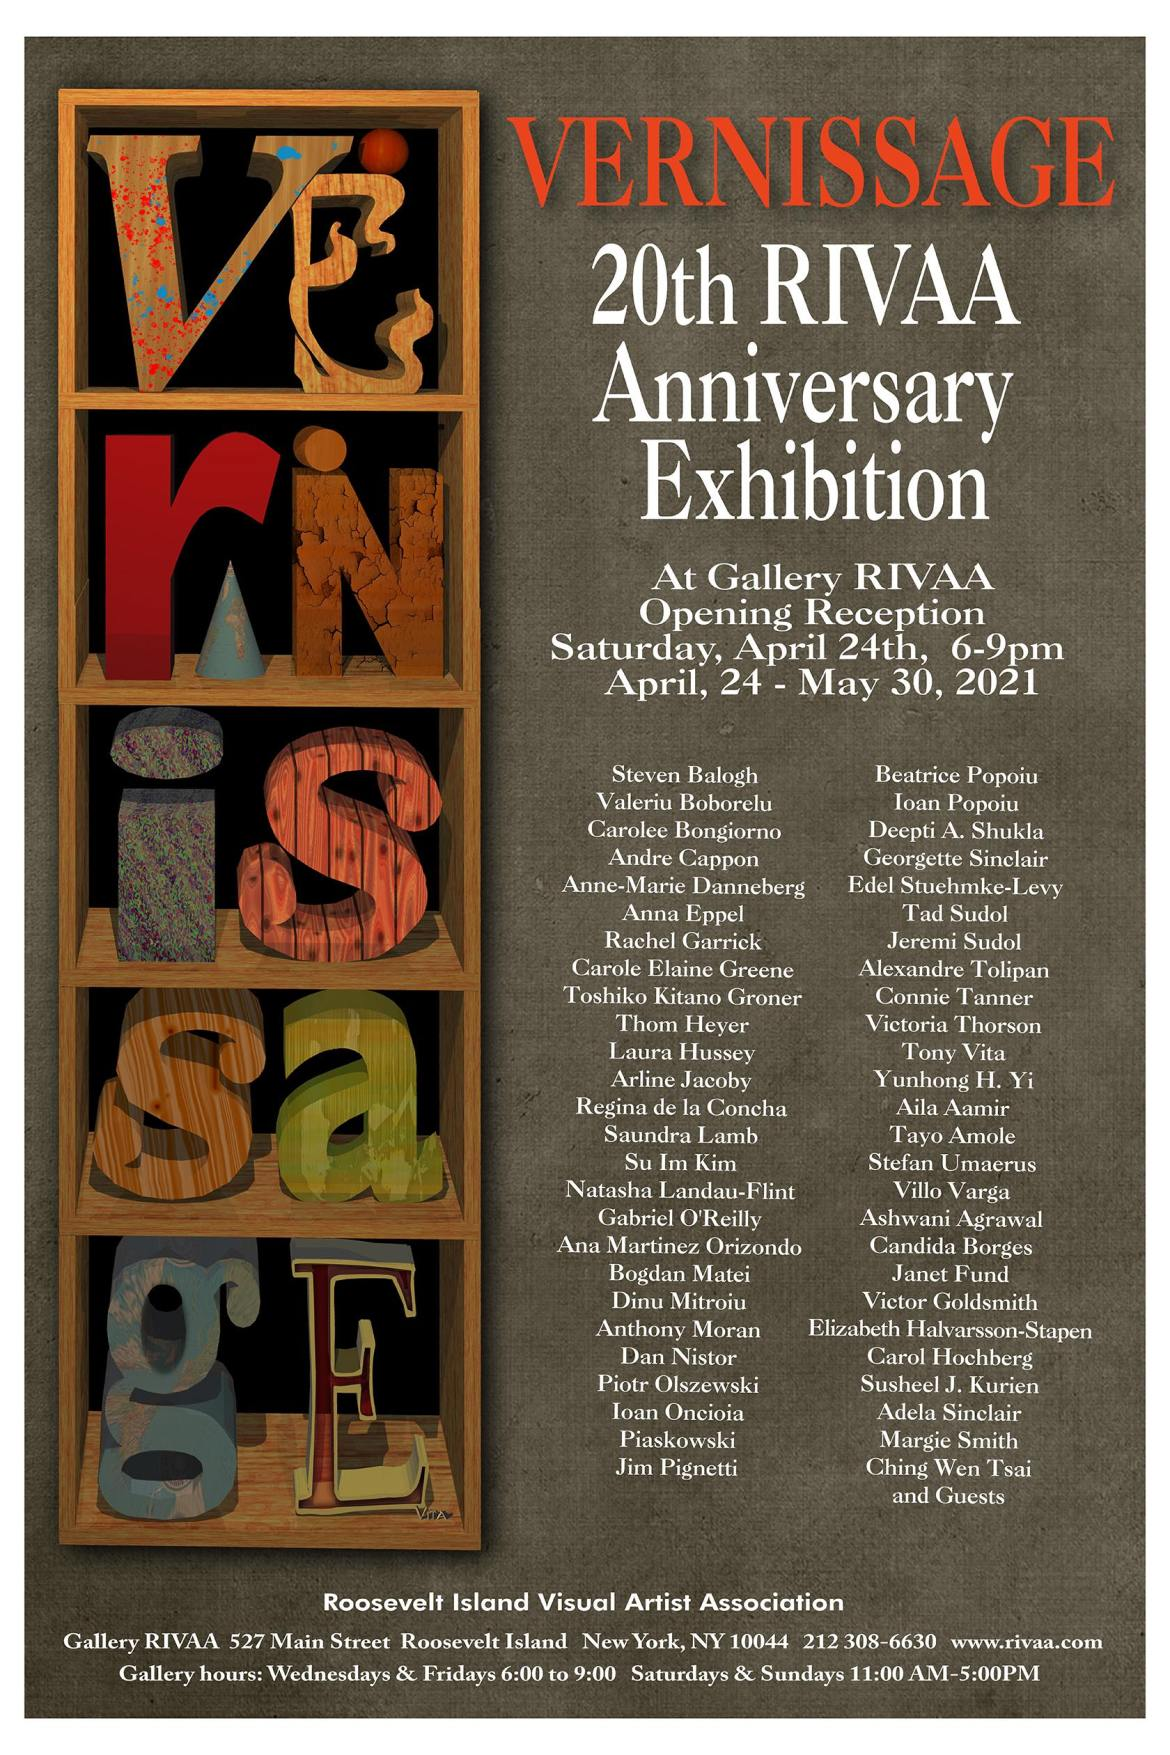 Vernissage 20 Opens Saturday, April 24th at Gallery RIVAA, 527 Main Street